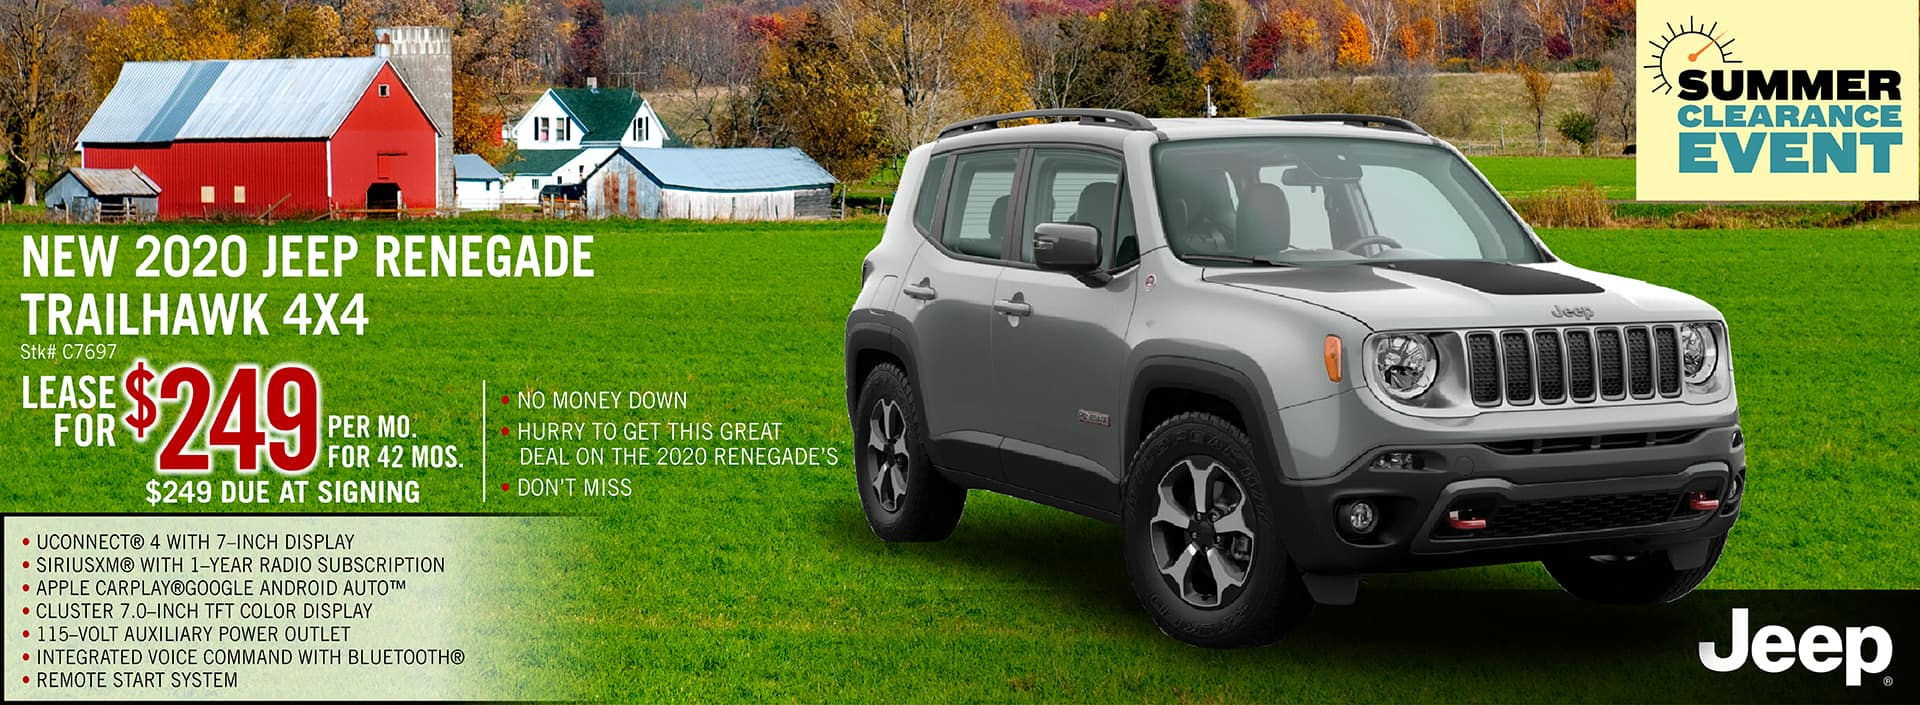 2020 Jeep Renegade Lease Offer | Midstate CDJR